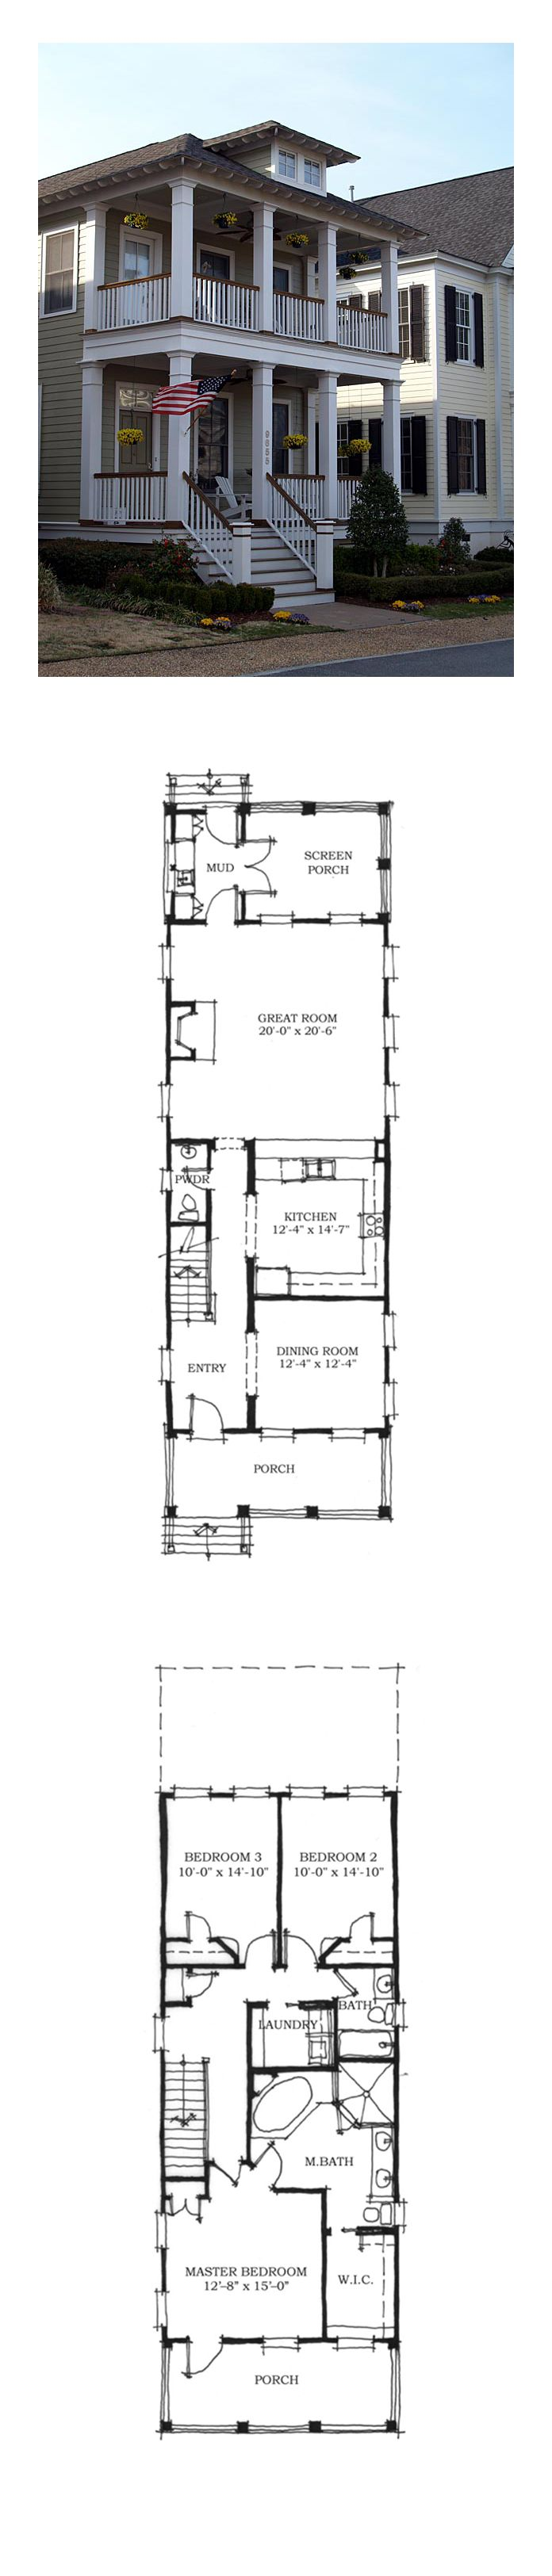 17 best images about carolina house plans on pinterest cool